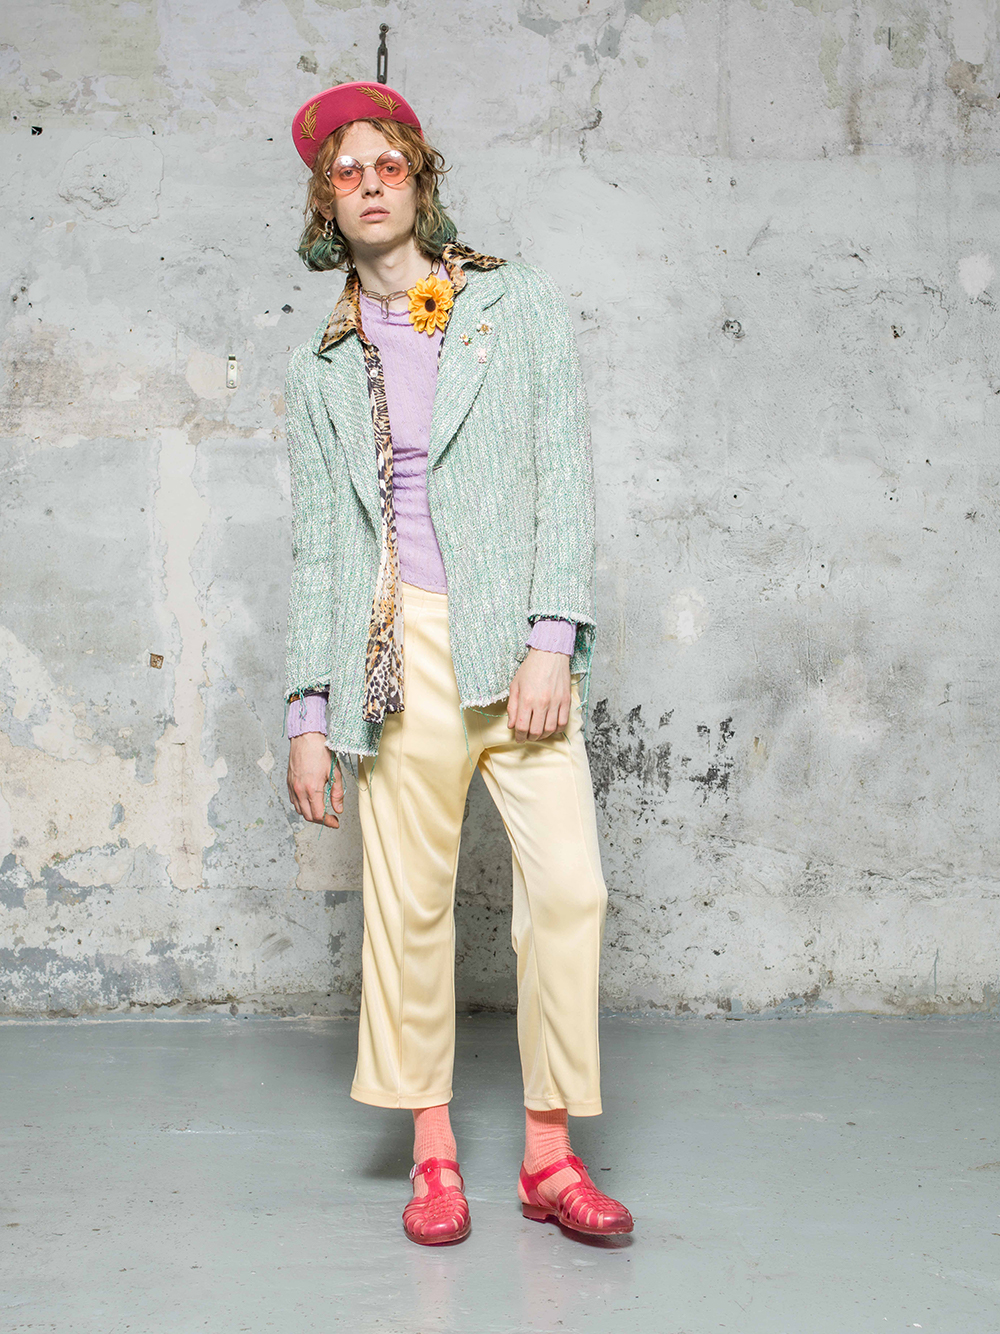 A look from Cool TM Spring 2021